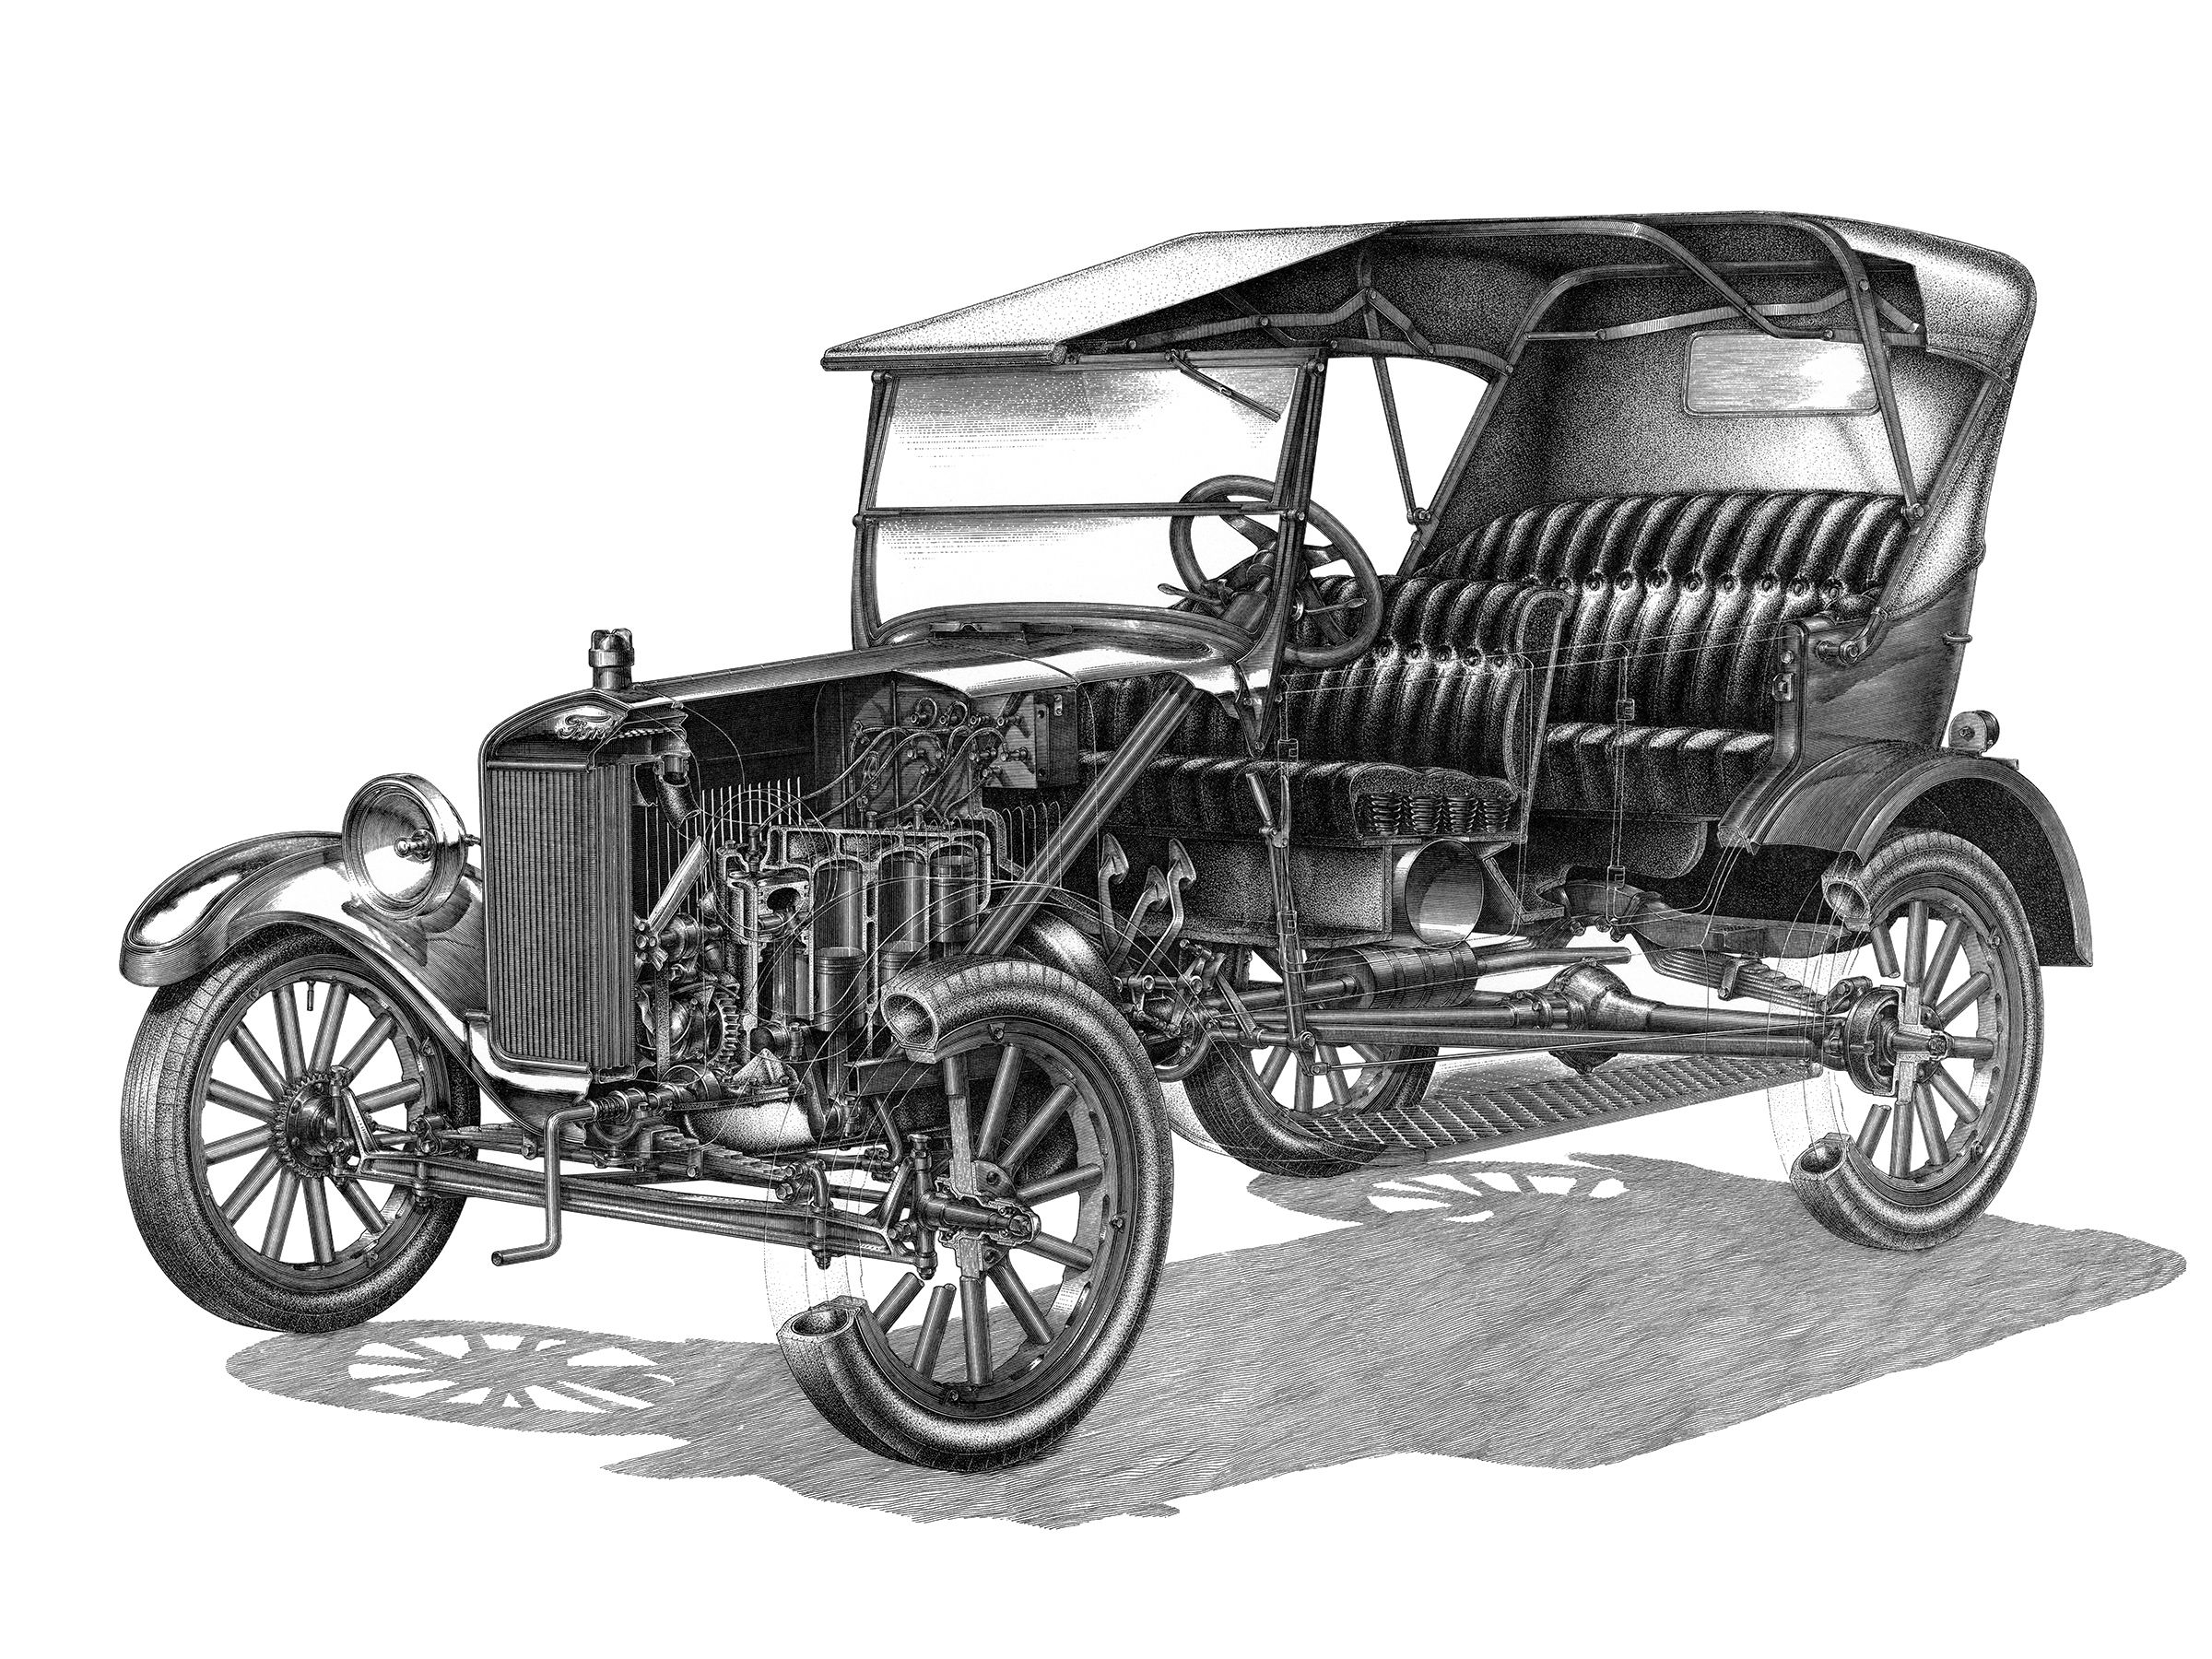 1926 Ford Model T Fordor Touring - Illustrated by Yoshihiro Inomoto Model,  Technical Illustrations,